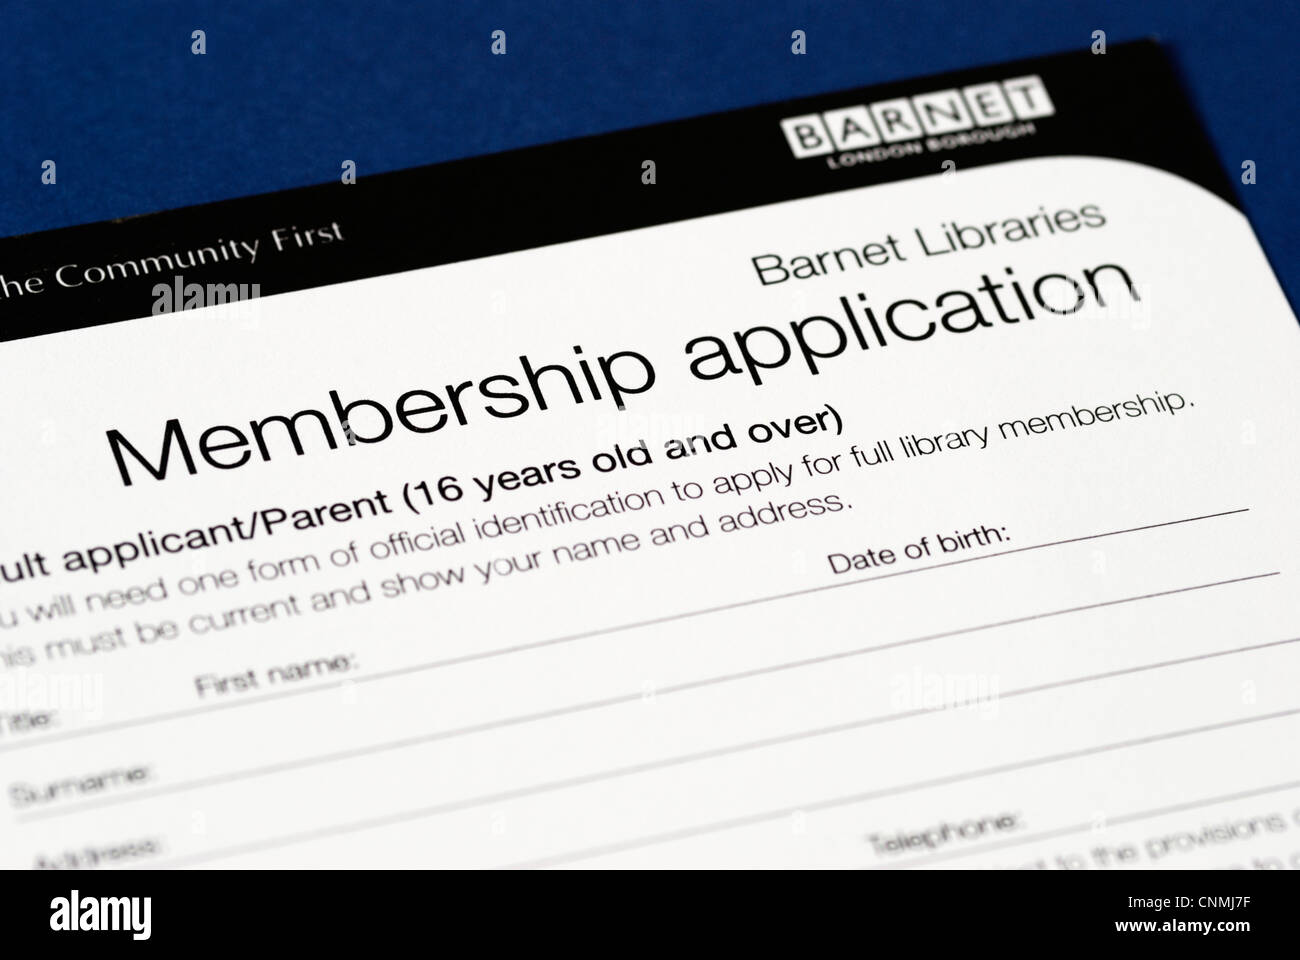 london barnet council library membership application form